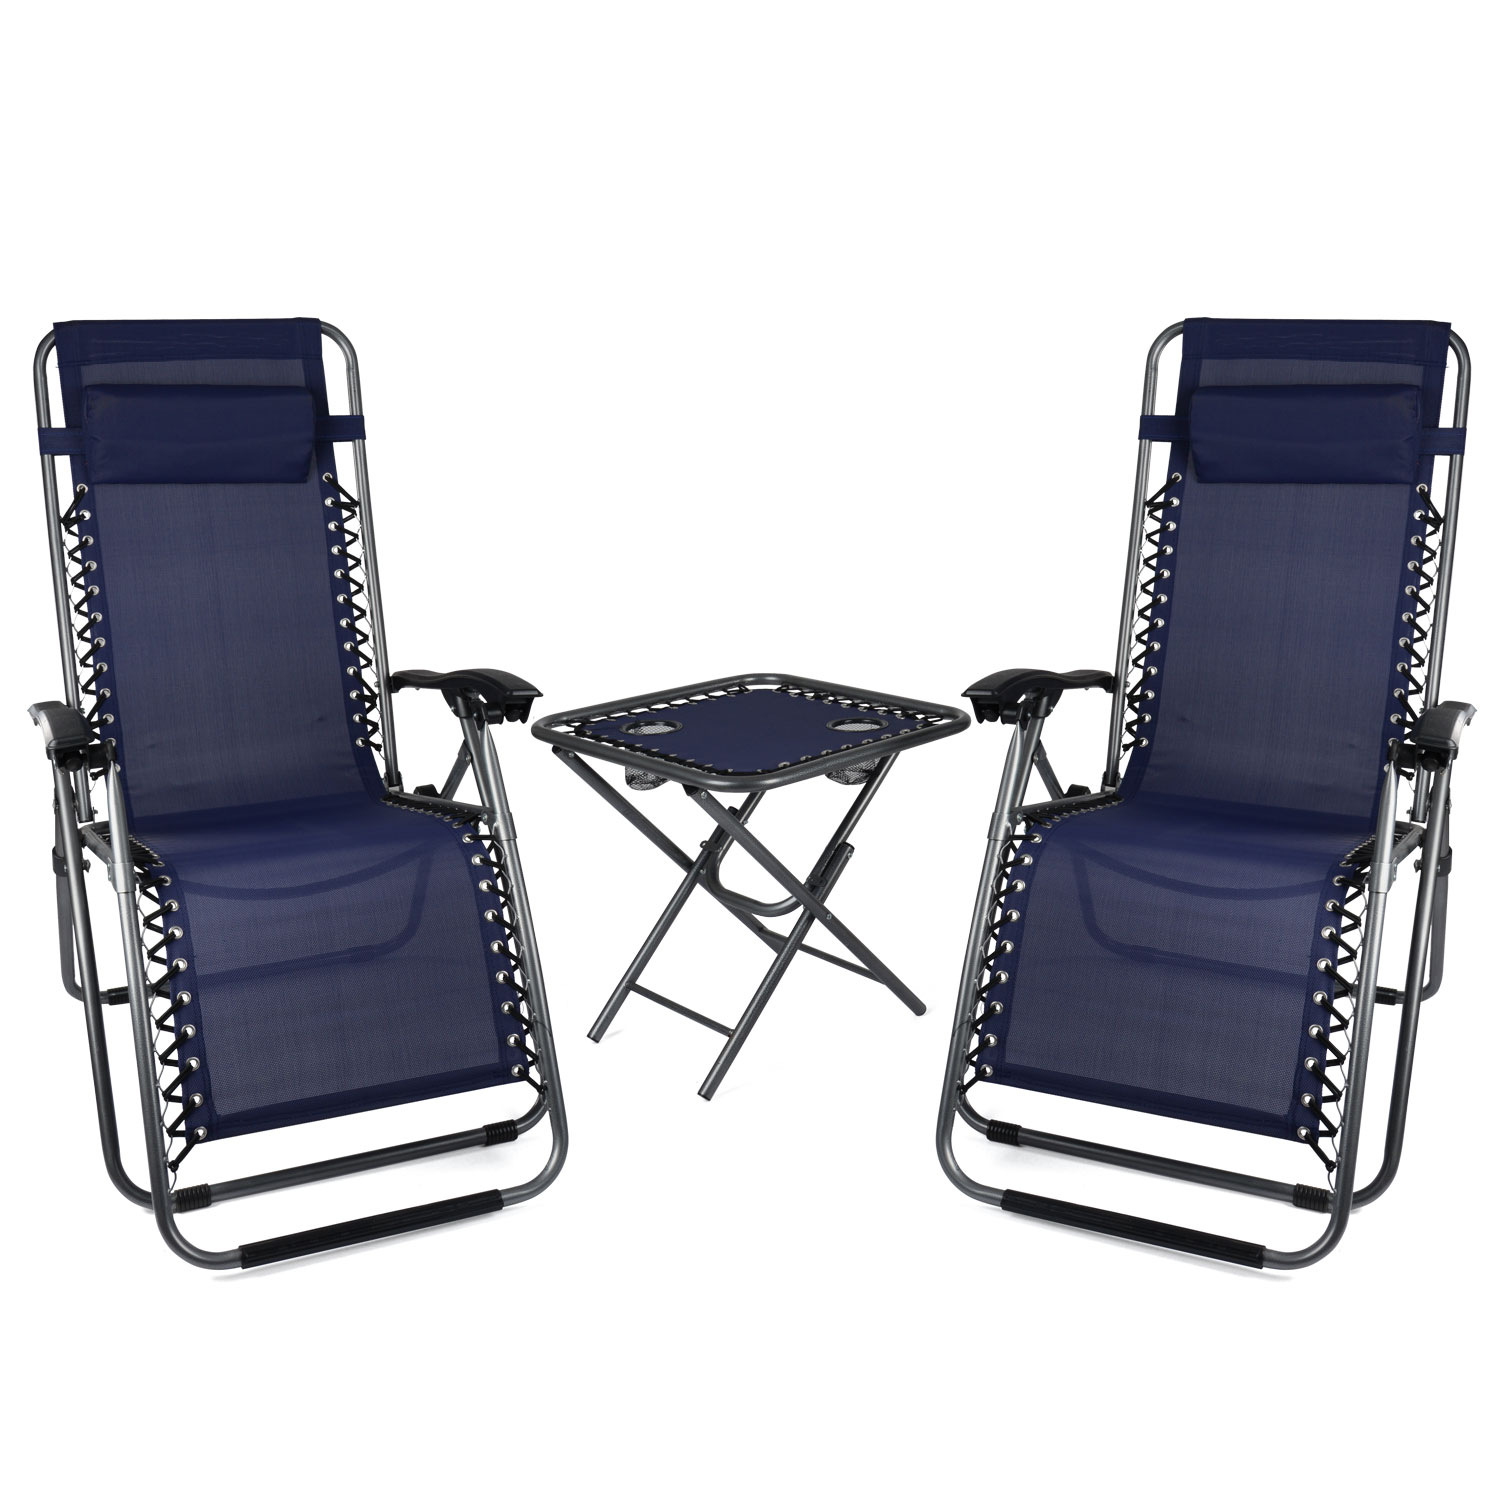 Image of Zero Gravity Chairs and Table Set - Blue